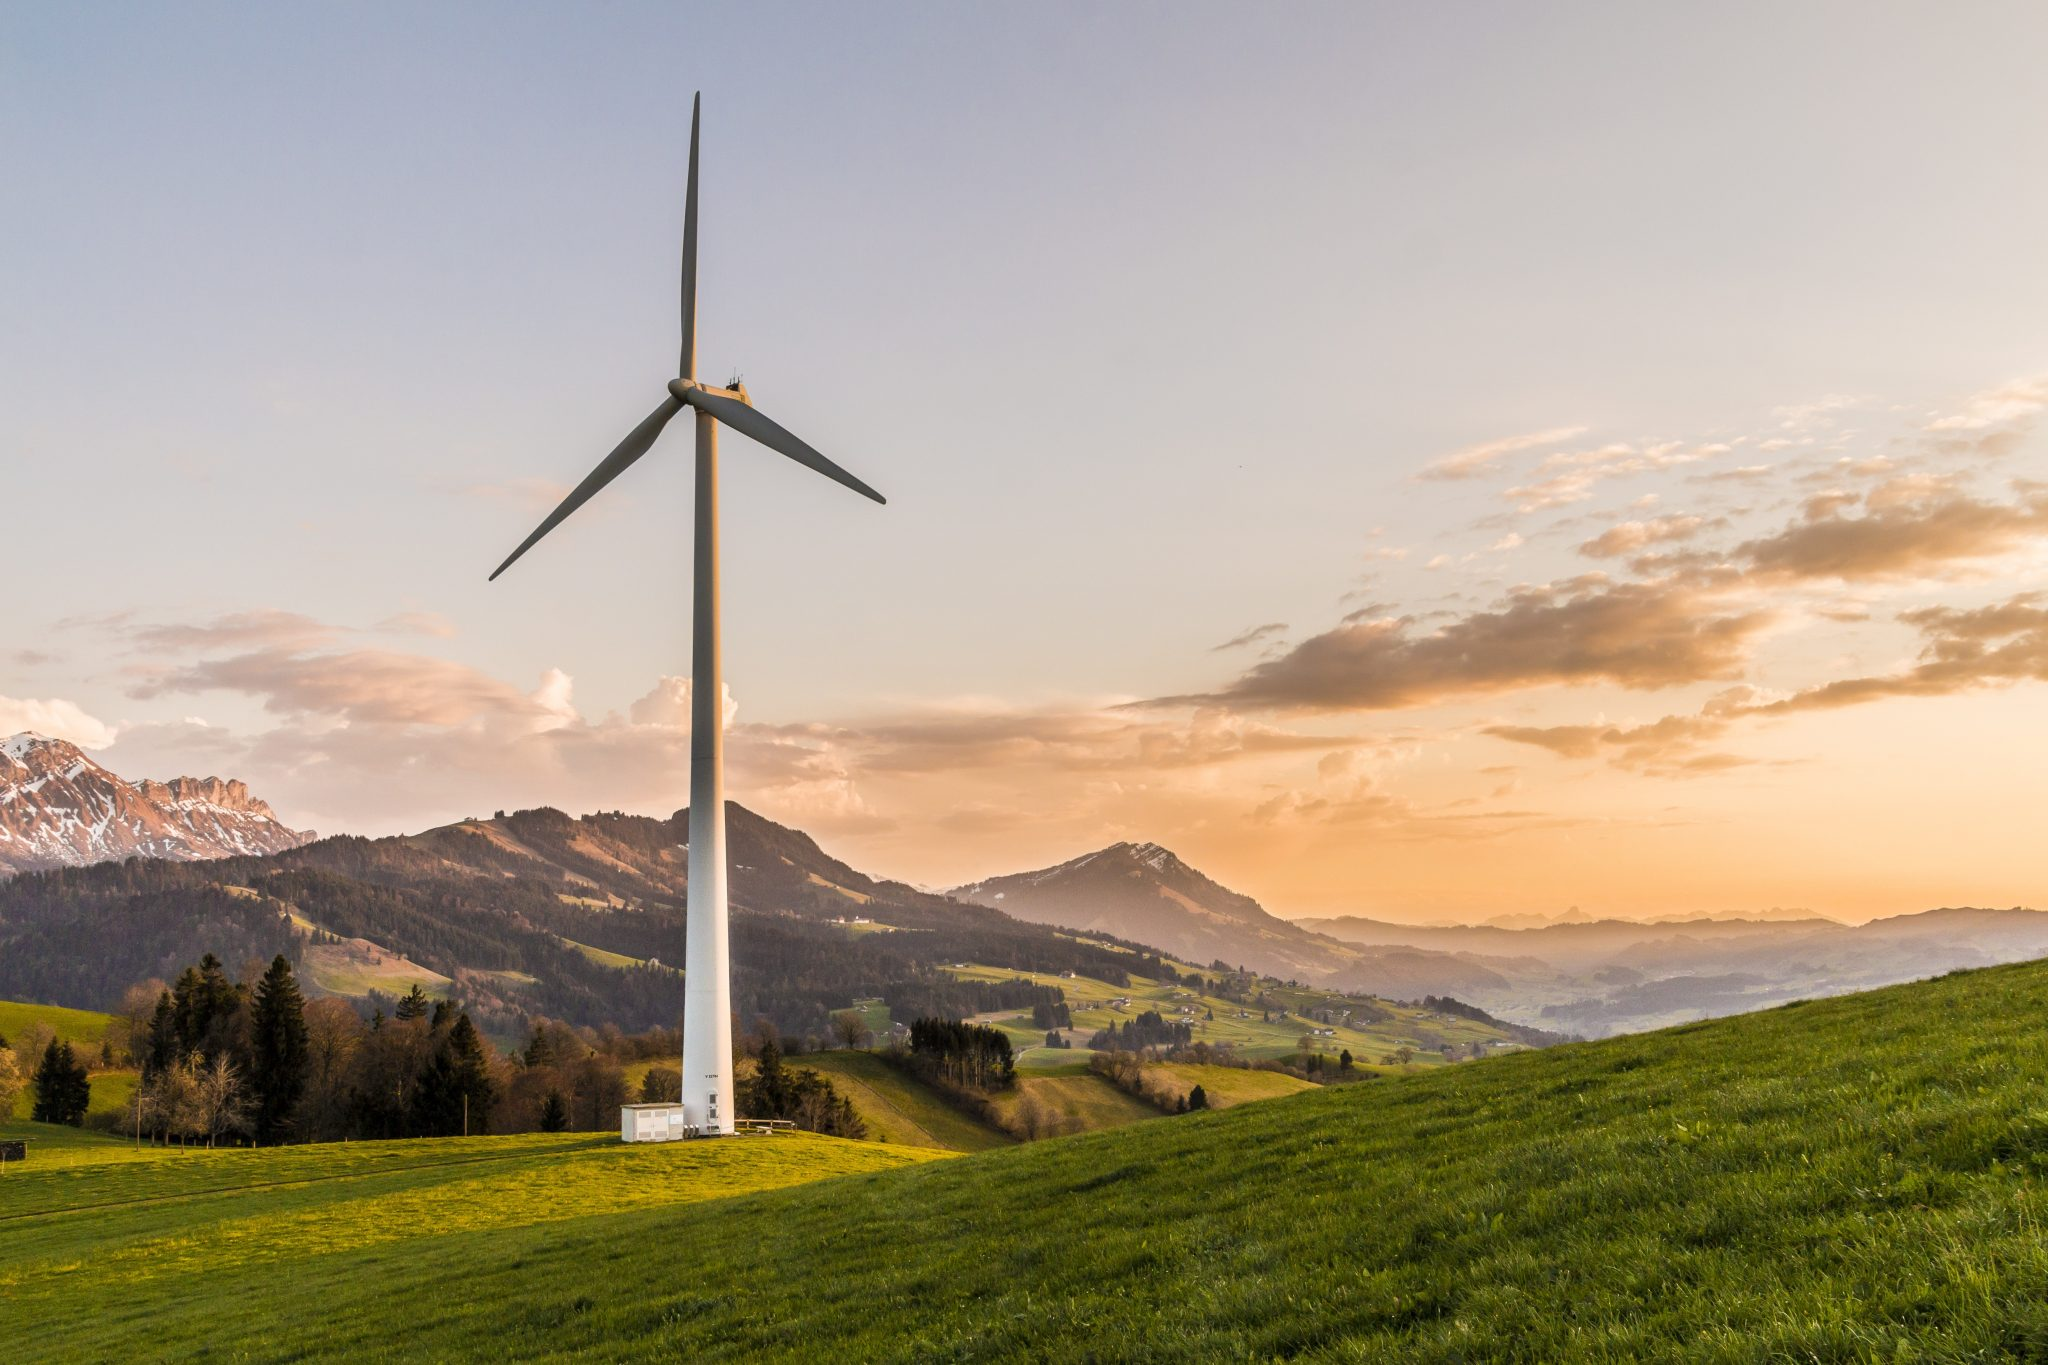 What Does COVID-19 Mean for Renewable Energy